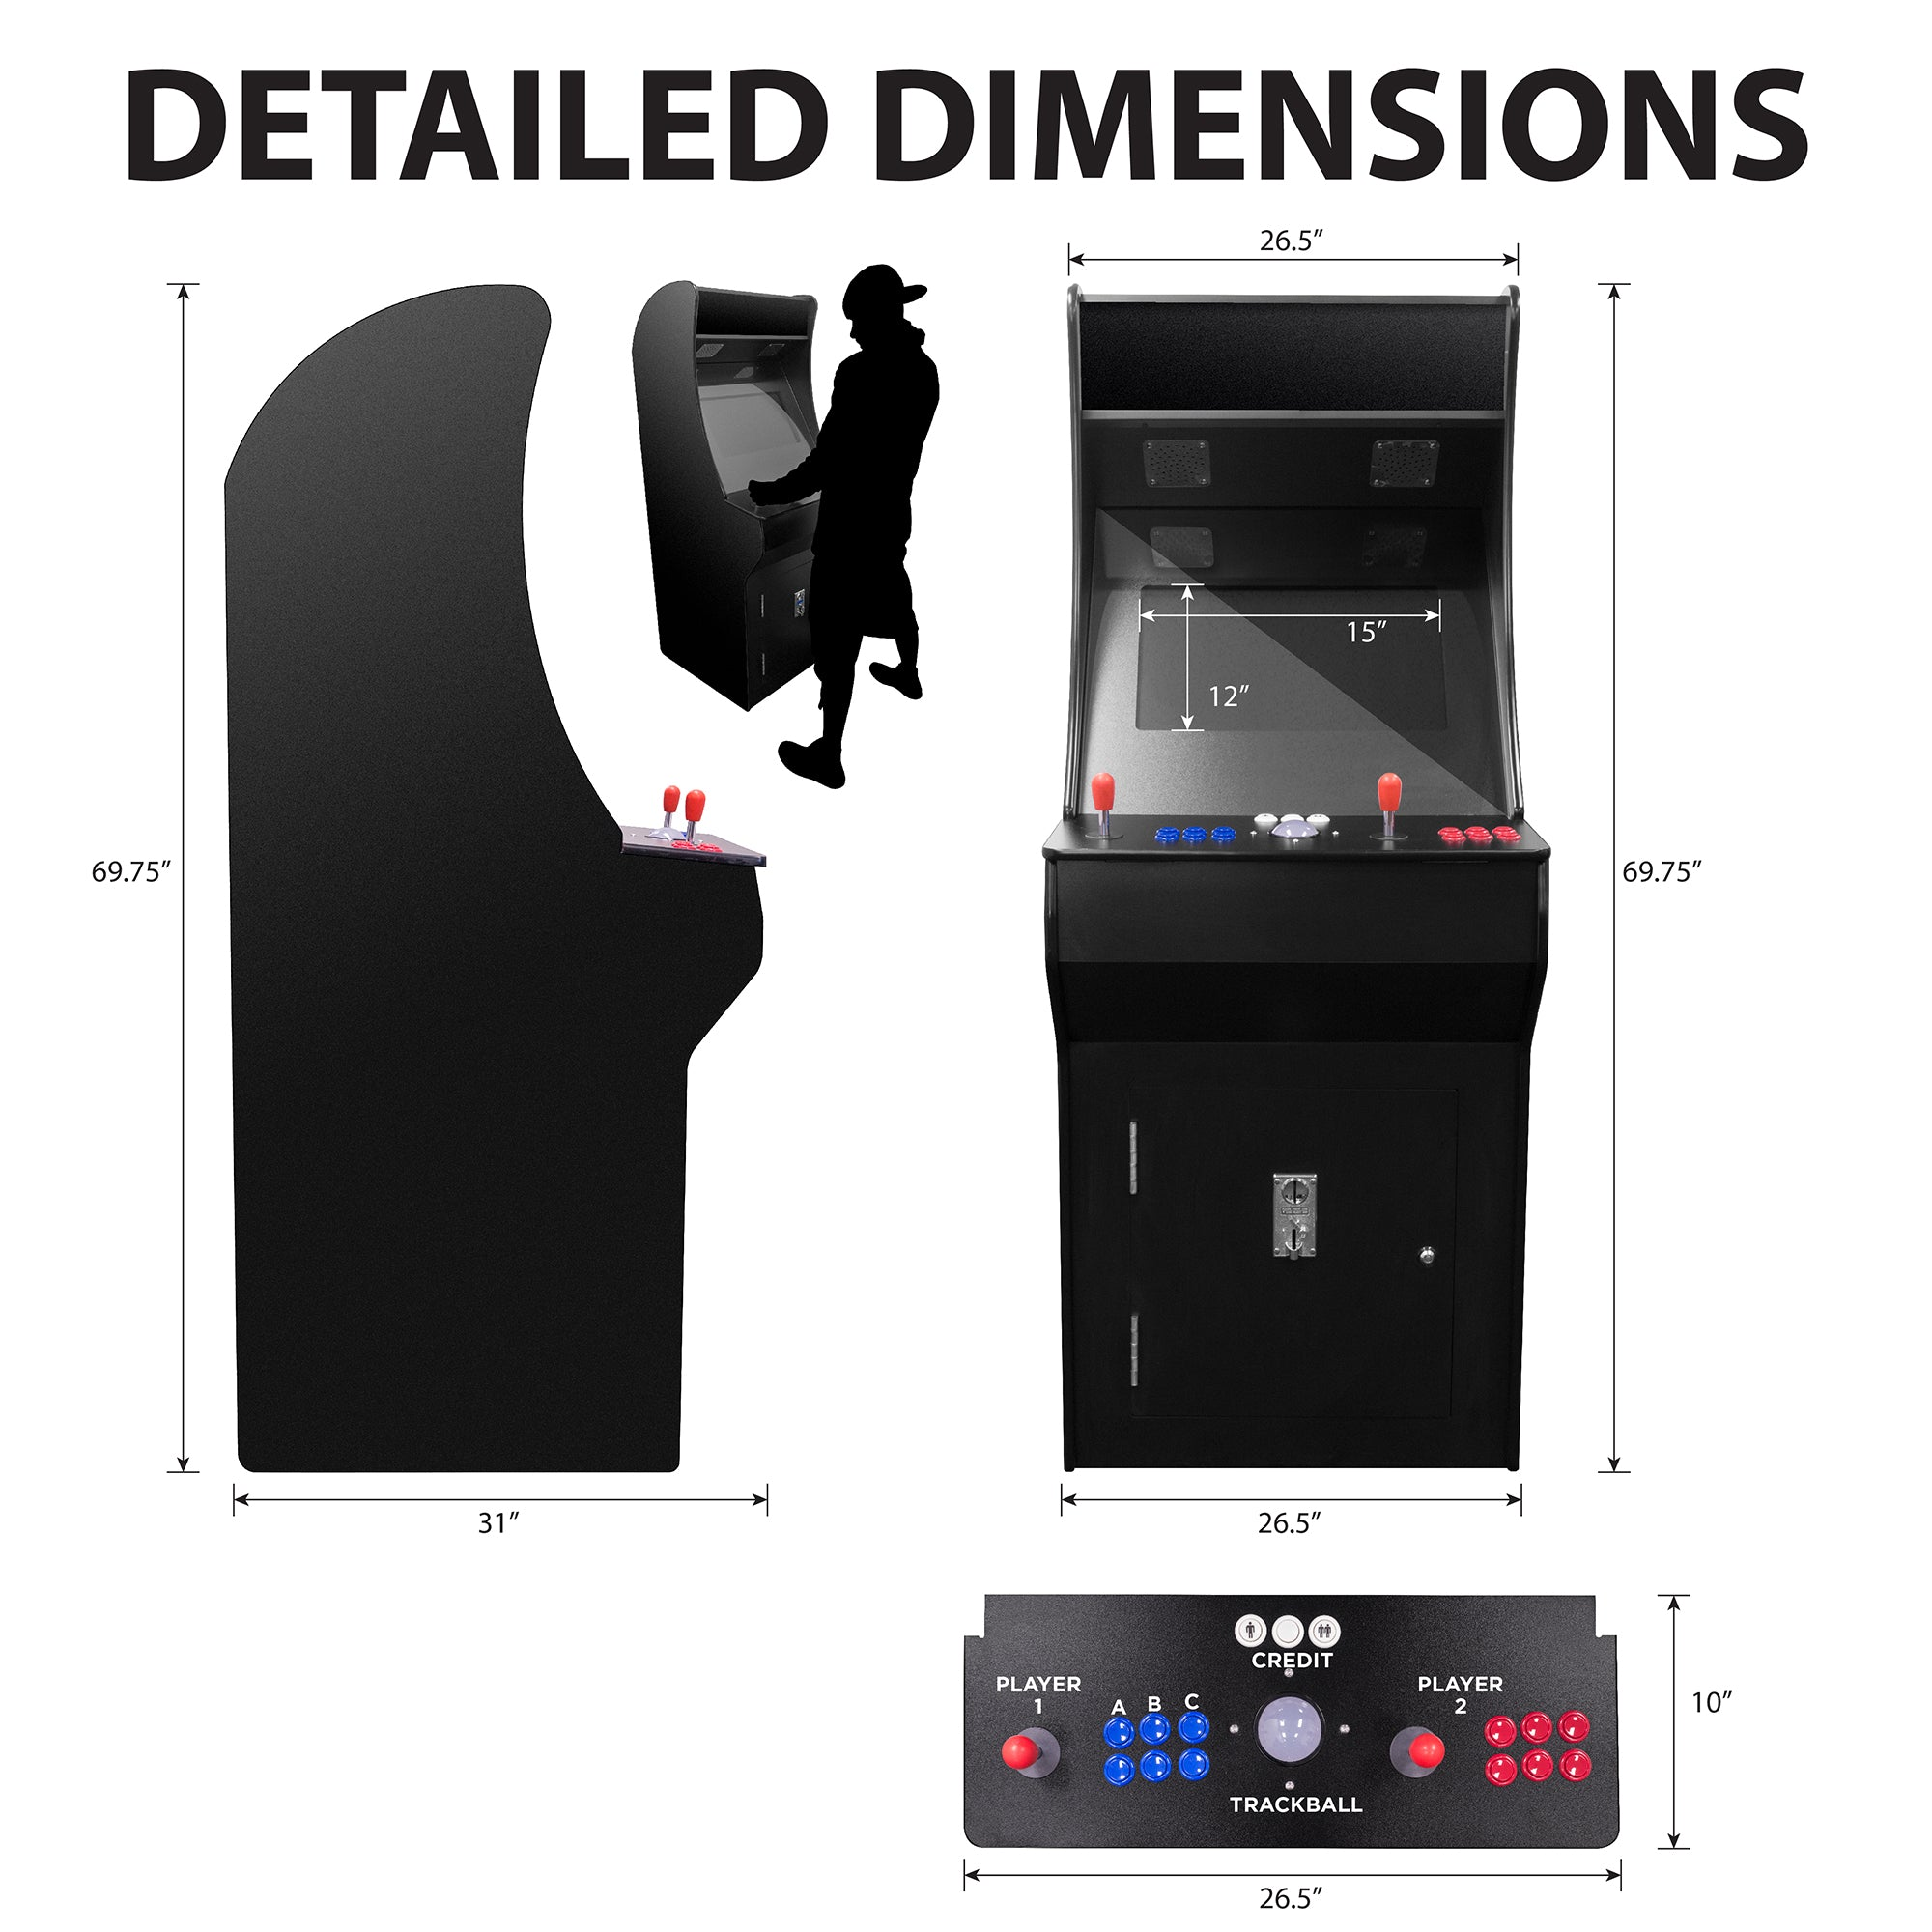 152135 2 Player 3500 Stand Up Arcade Dimensions